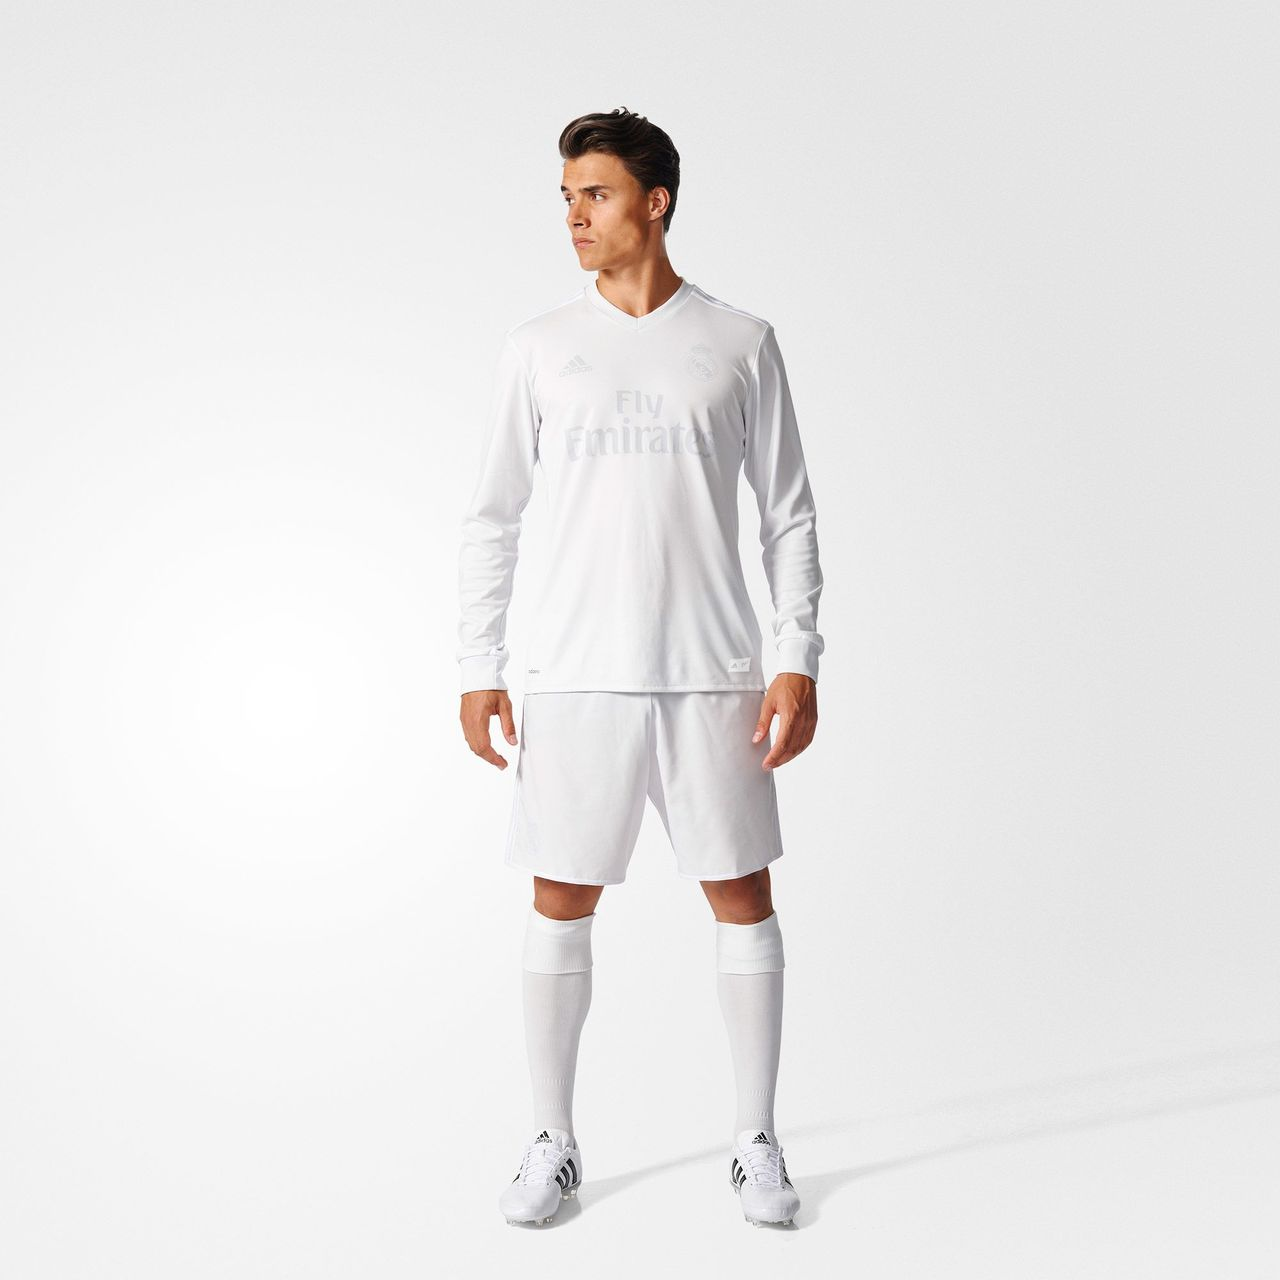 new style 47447 9035a Real Madrid 16/17 Adidas Parley Kit | 16/17 Kits | Football ...